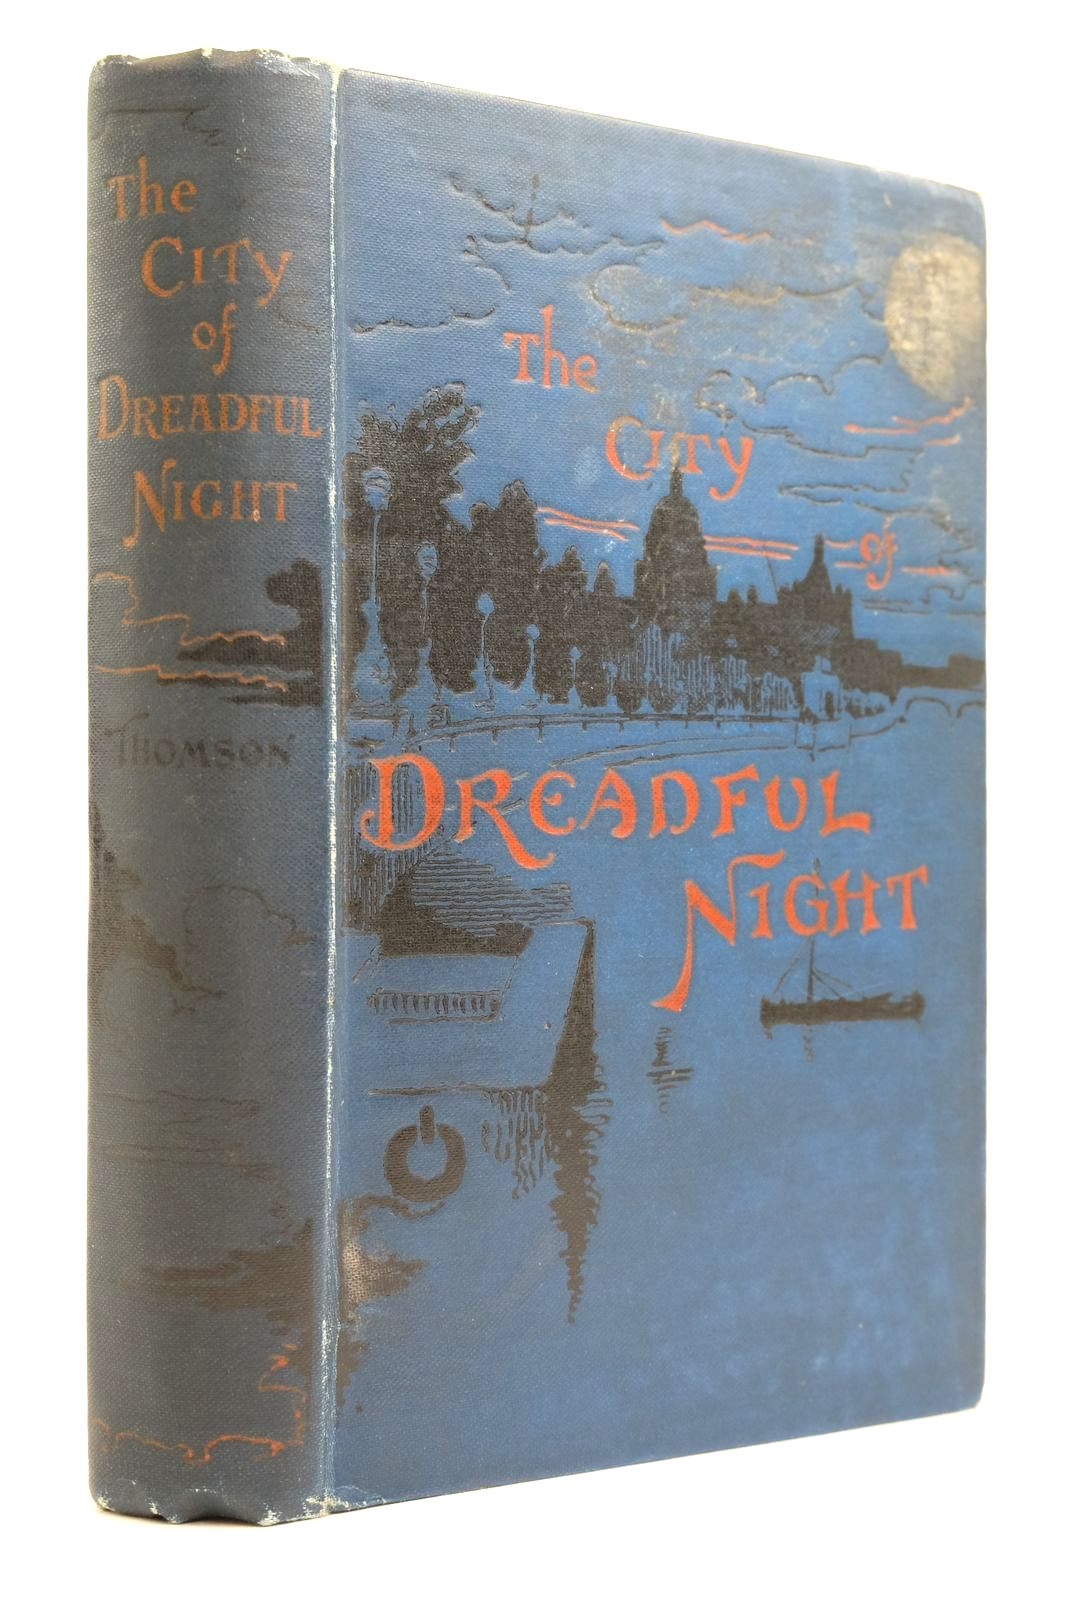 Photo of THE CITY OF DREADFUL NIGHT AND OTHER POEMS- Stock Number: 2135288